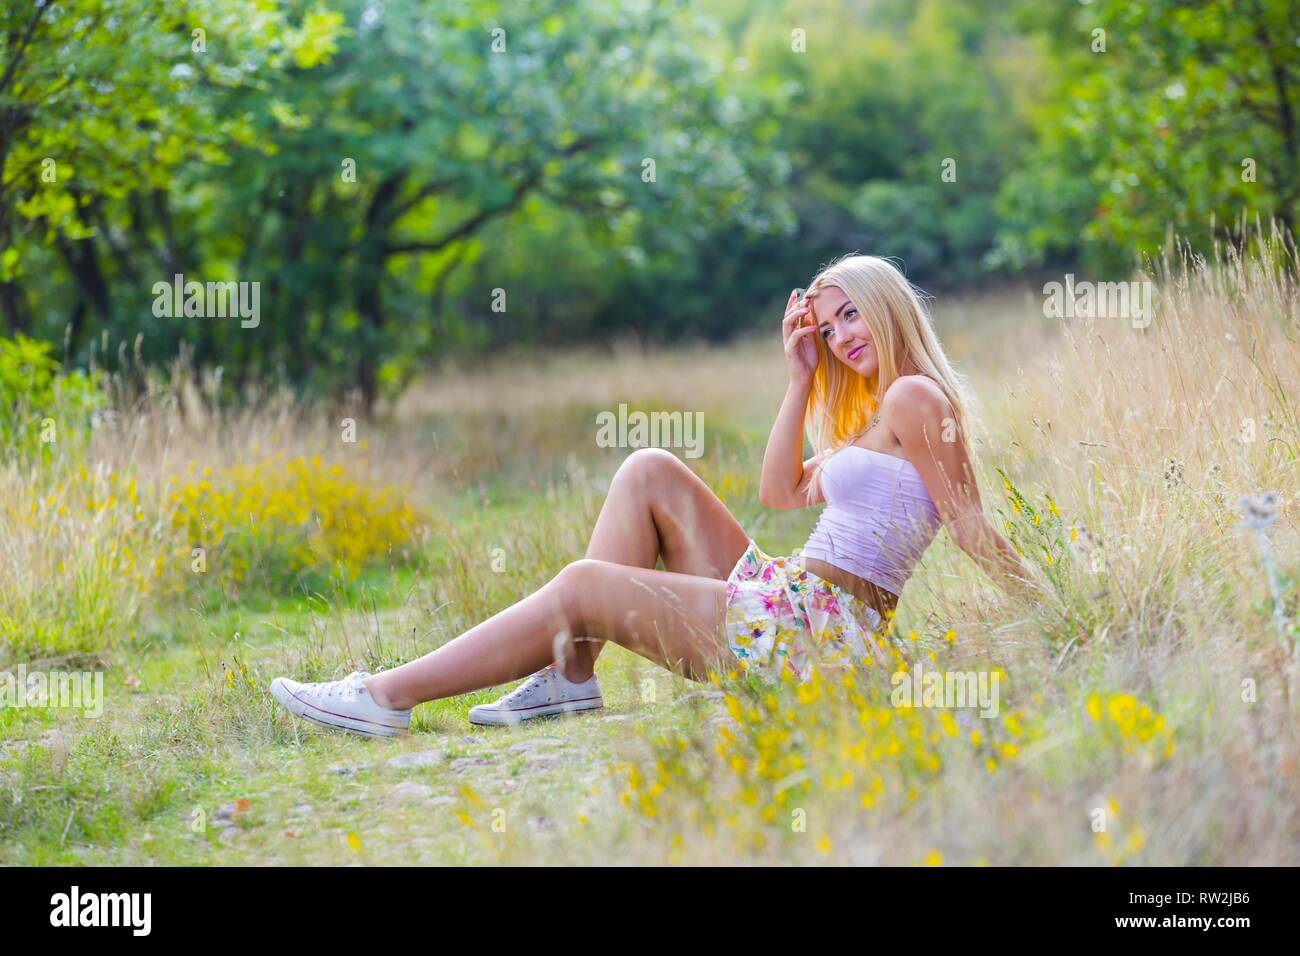 One pretty teen girl female person - Stock Image